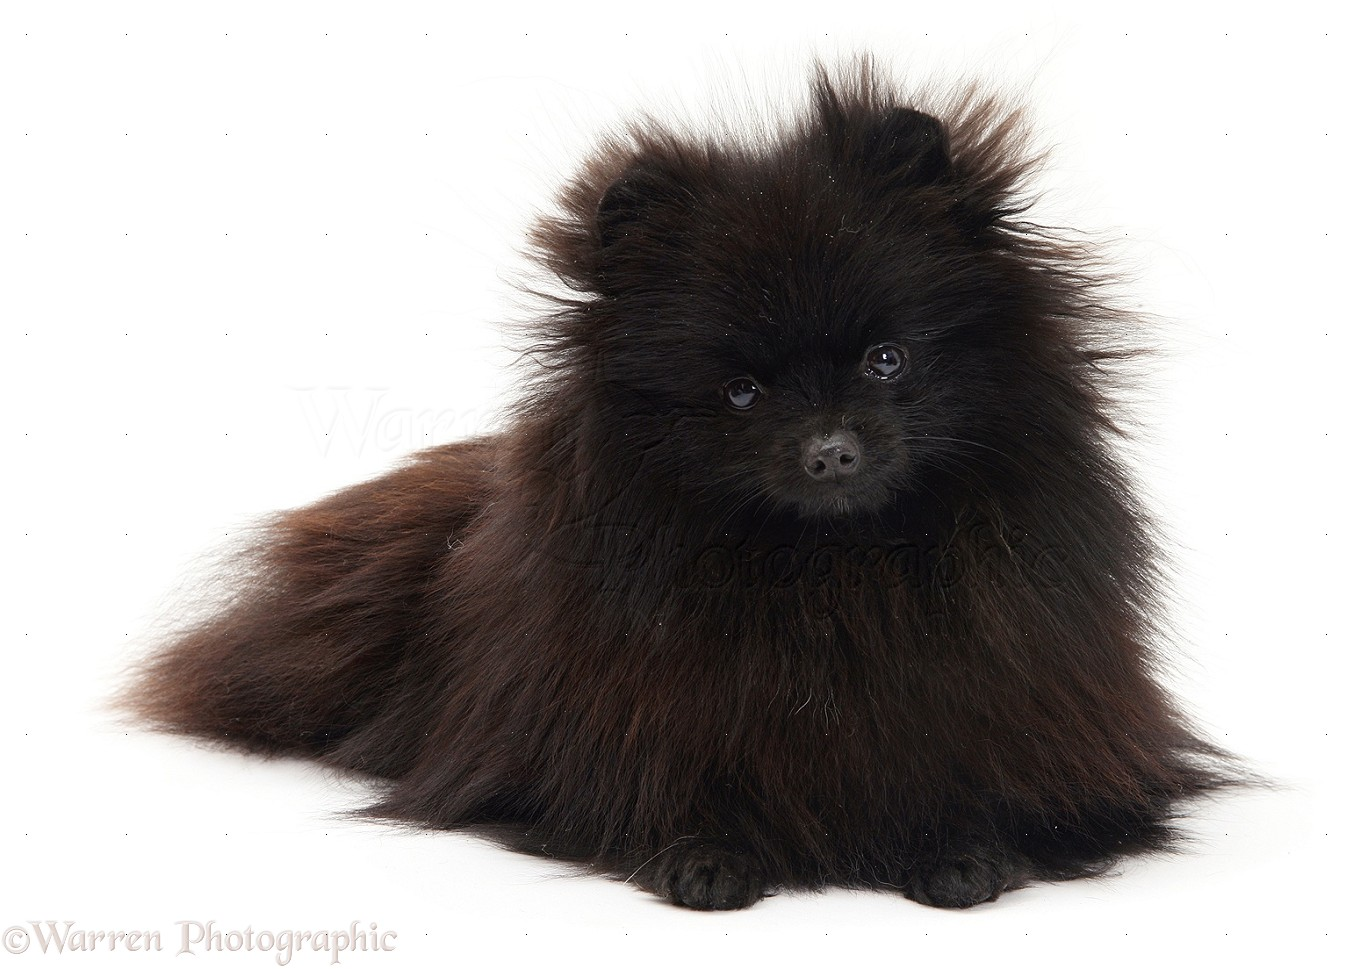 Dog: Black Pomeranian photo - WP11405